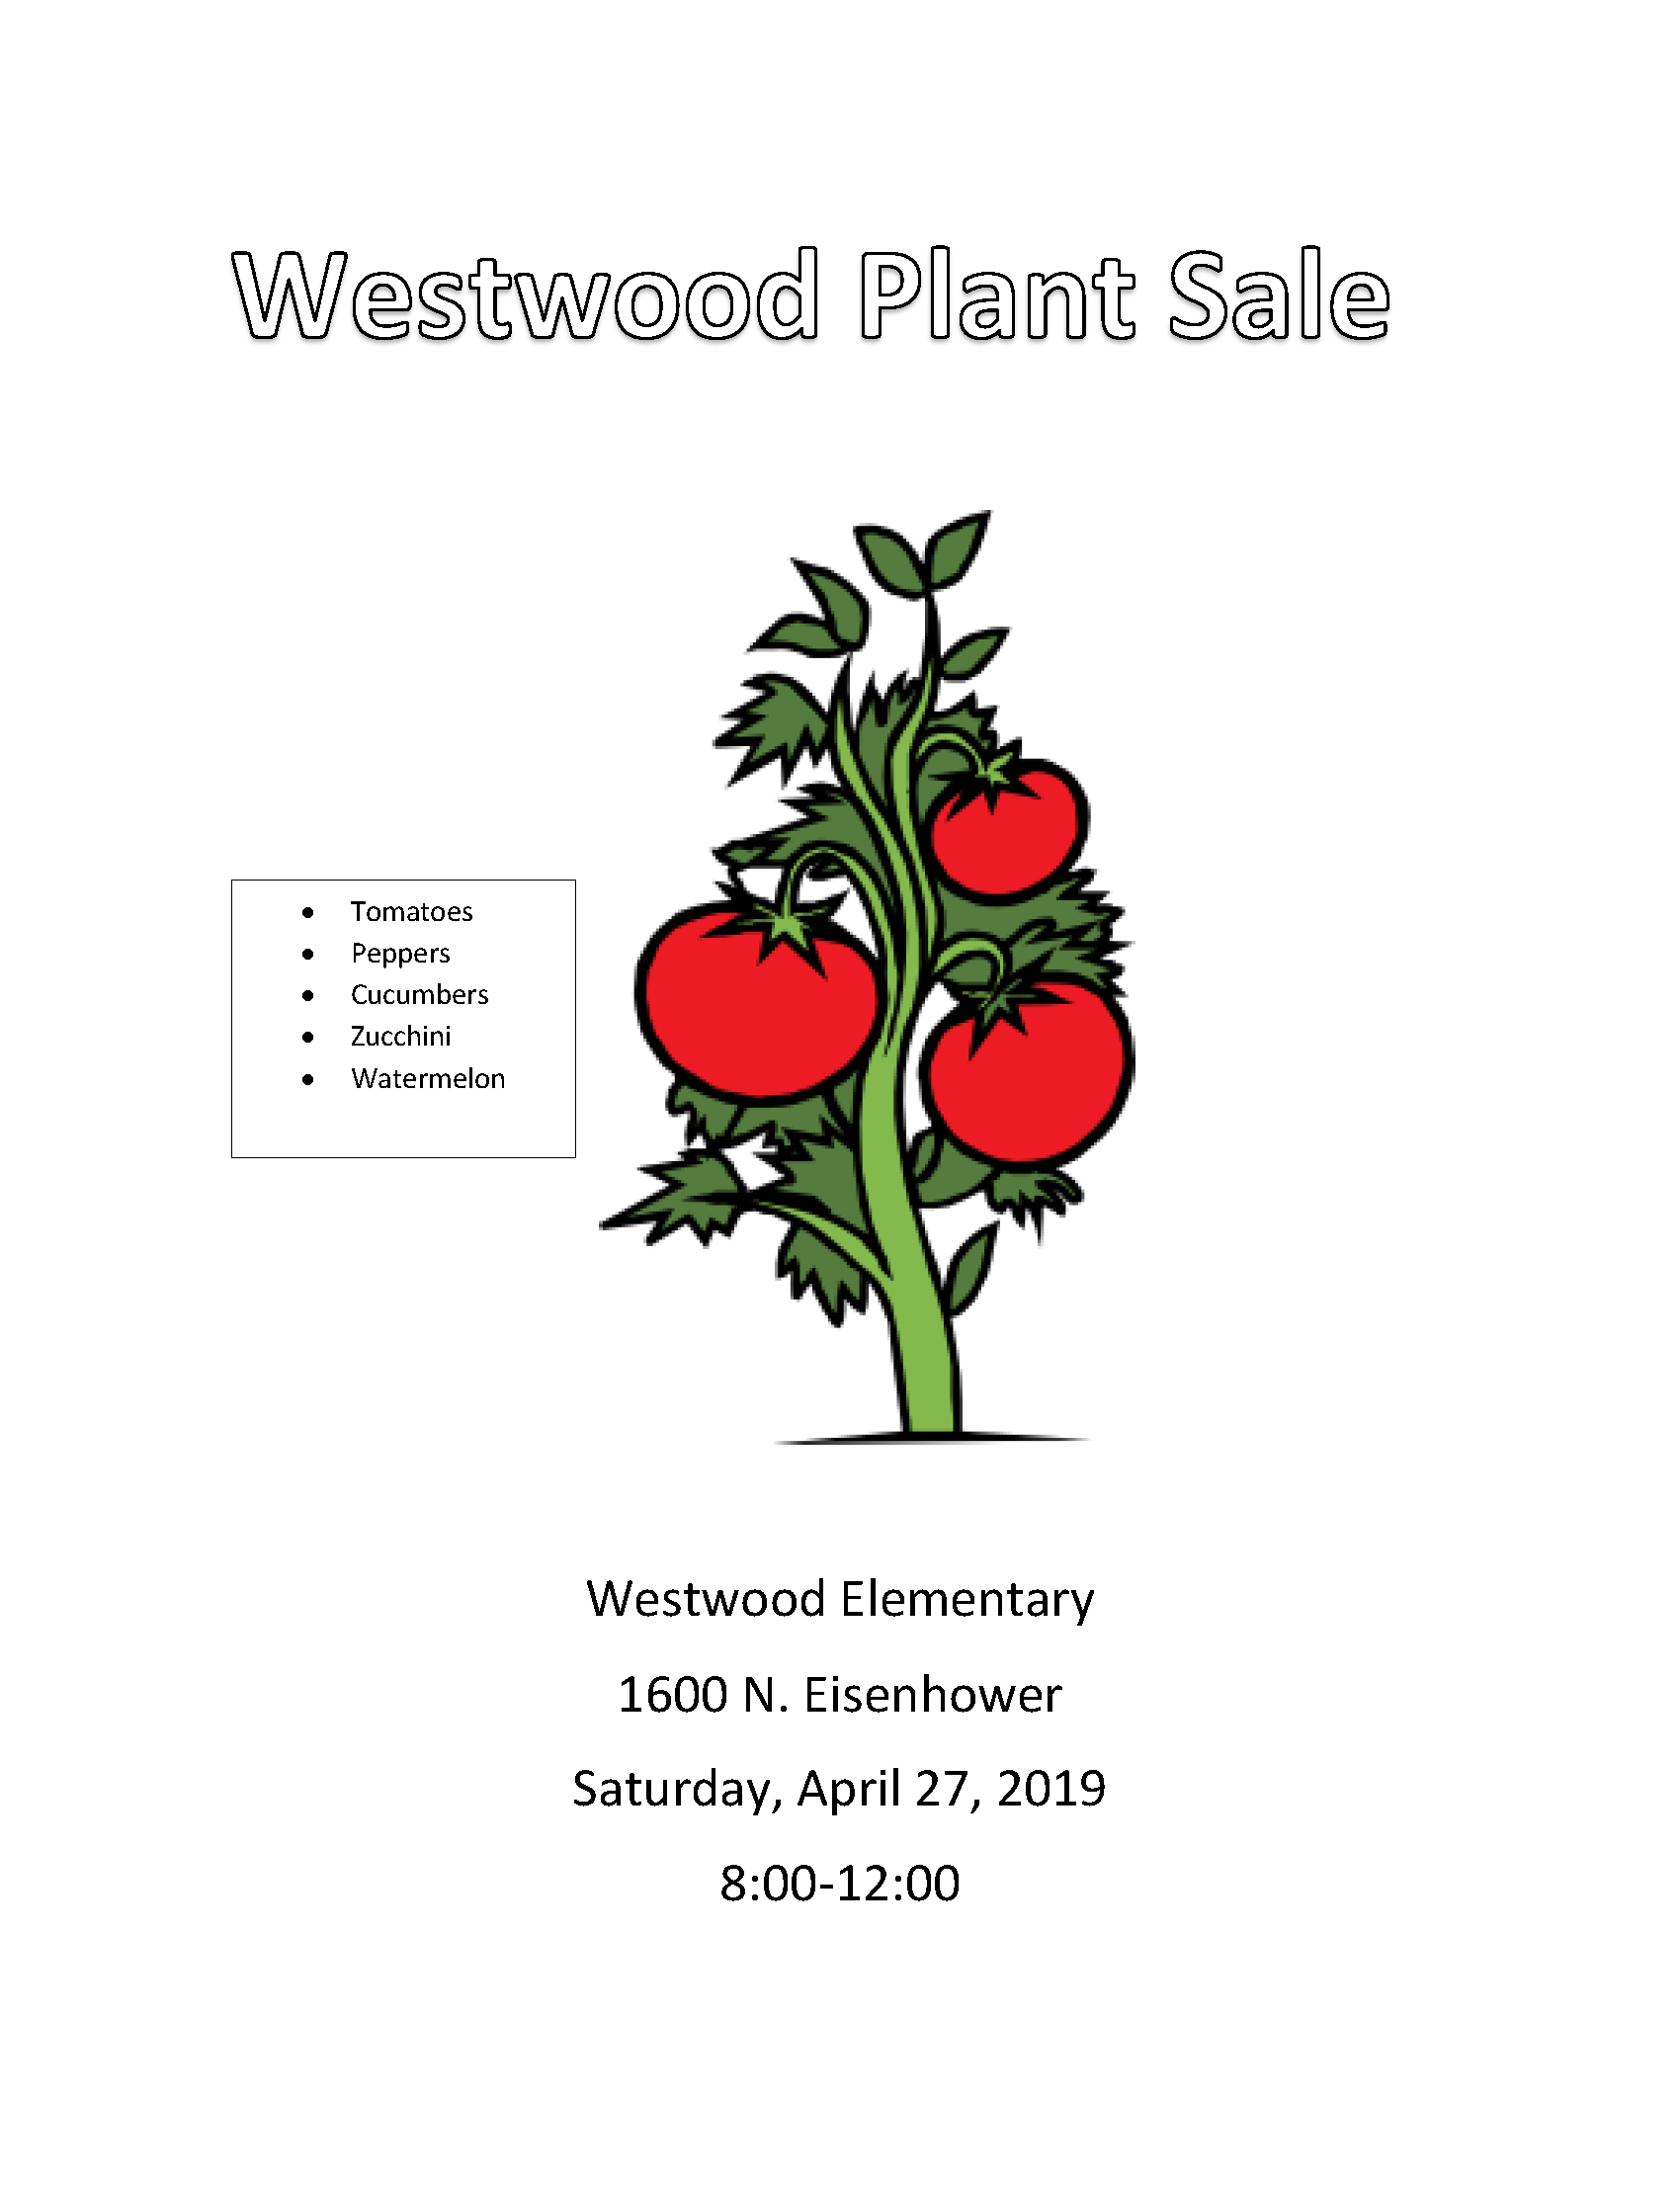 Image of the Westwood Elementary Plant Sale flyer